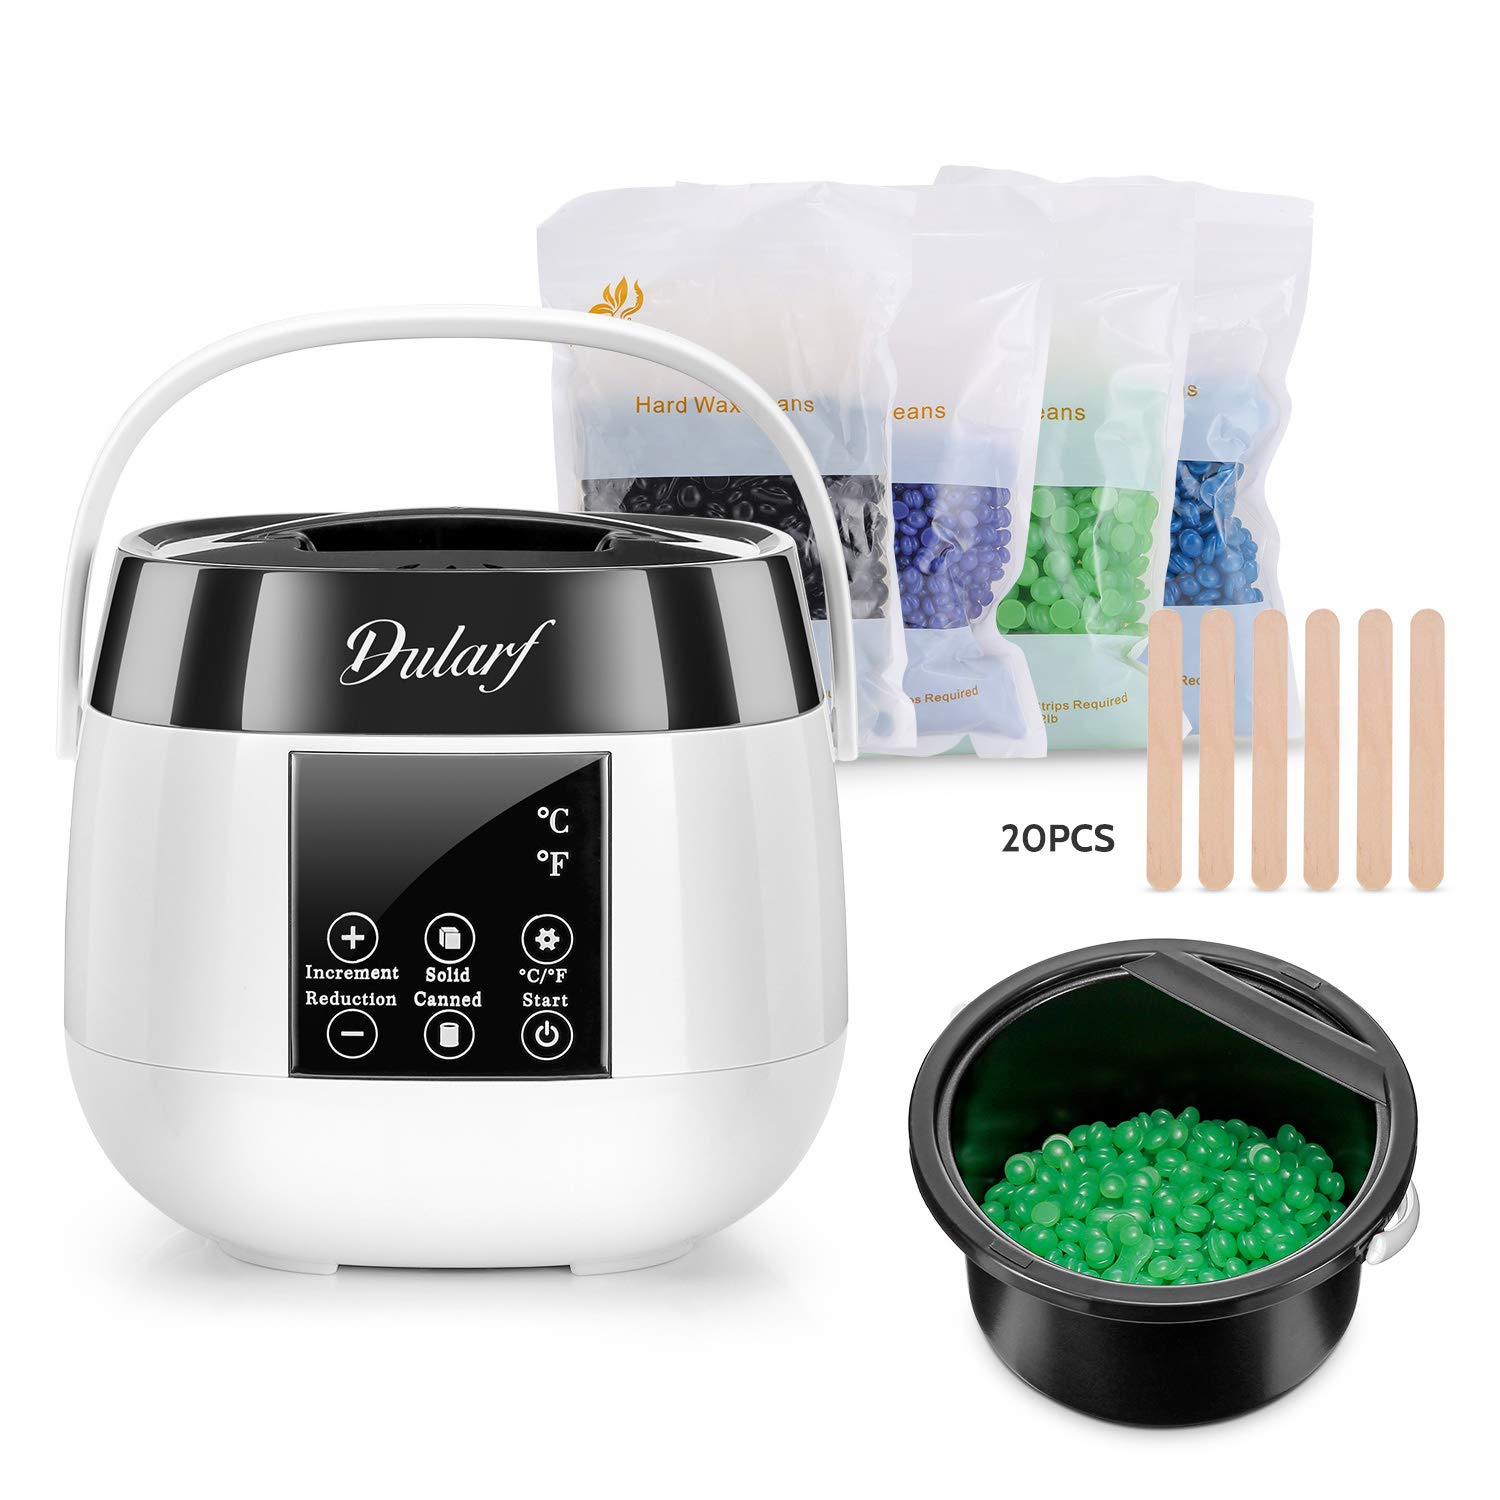 Dularf Water Flosser Cordless Oral Irrigator Rechargeable Dental Flossers IPX7 Waterproof Teeth Cleaner with LCD Display, 3 Modes & 5 Tips and Storage Box, and Travel Storage Bag (Black)